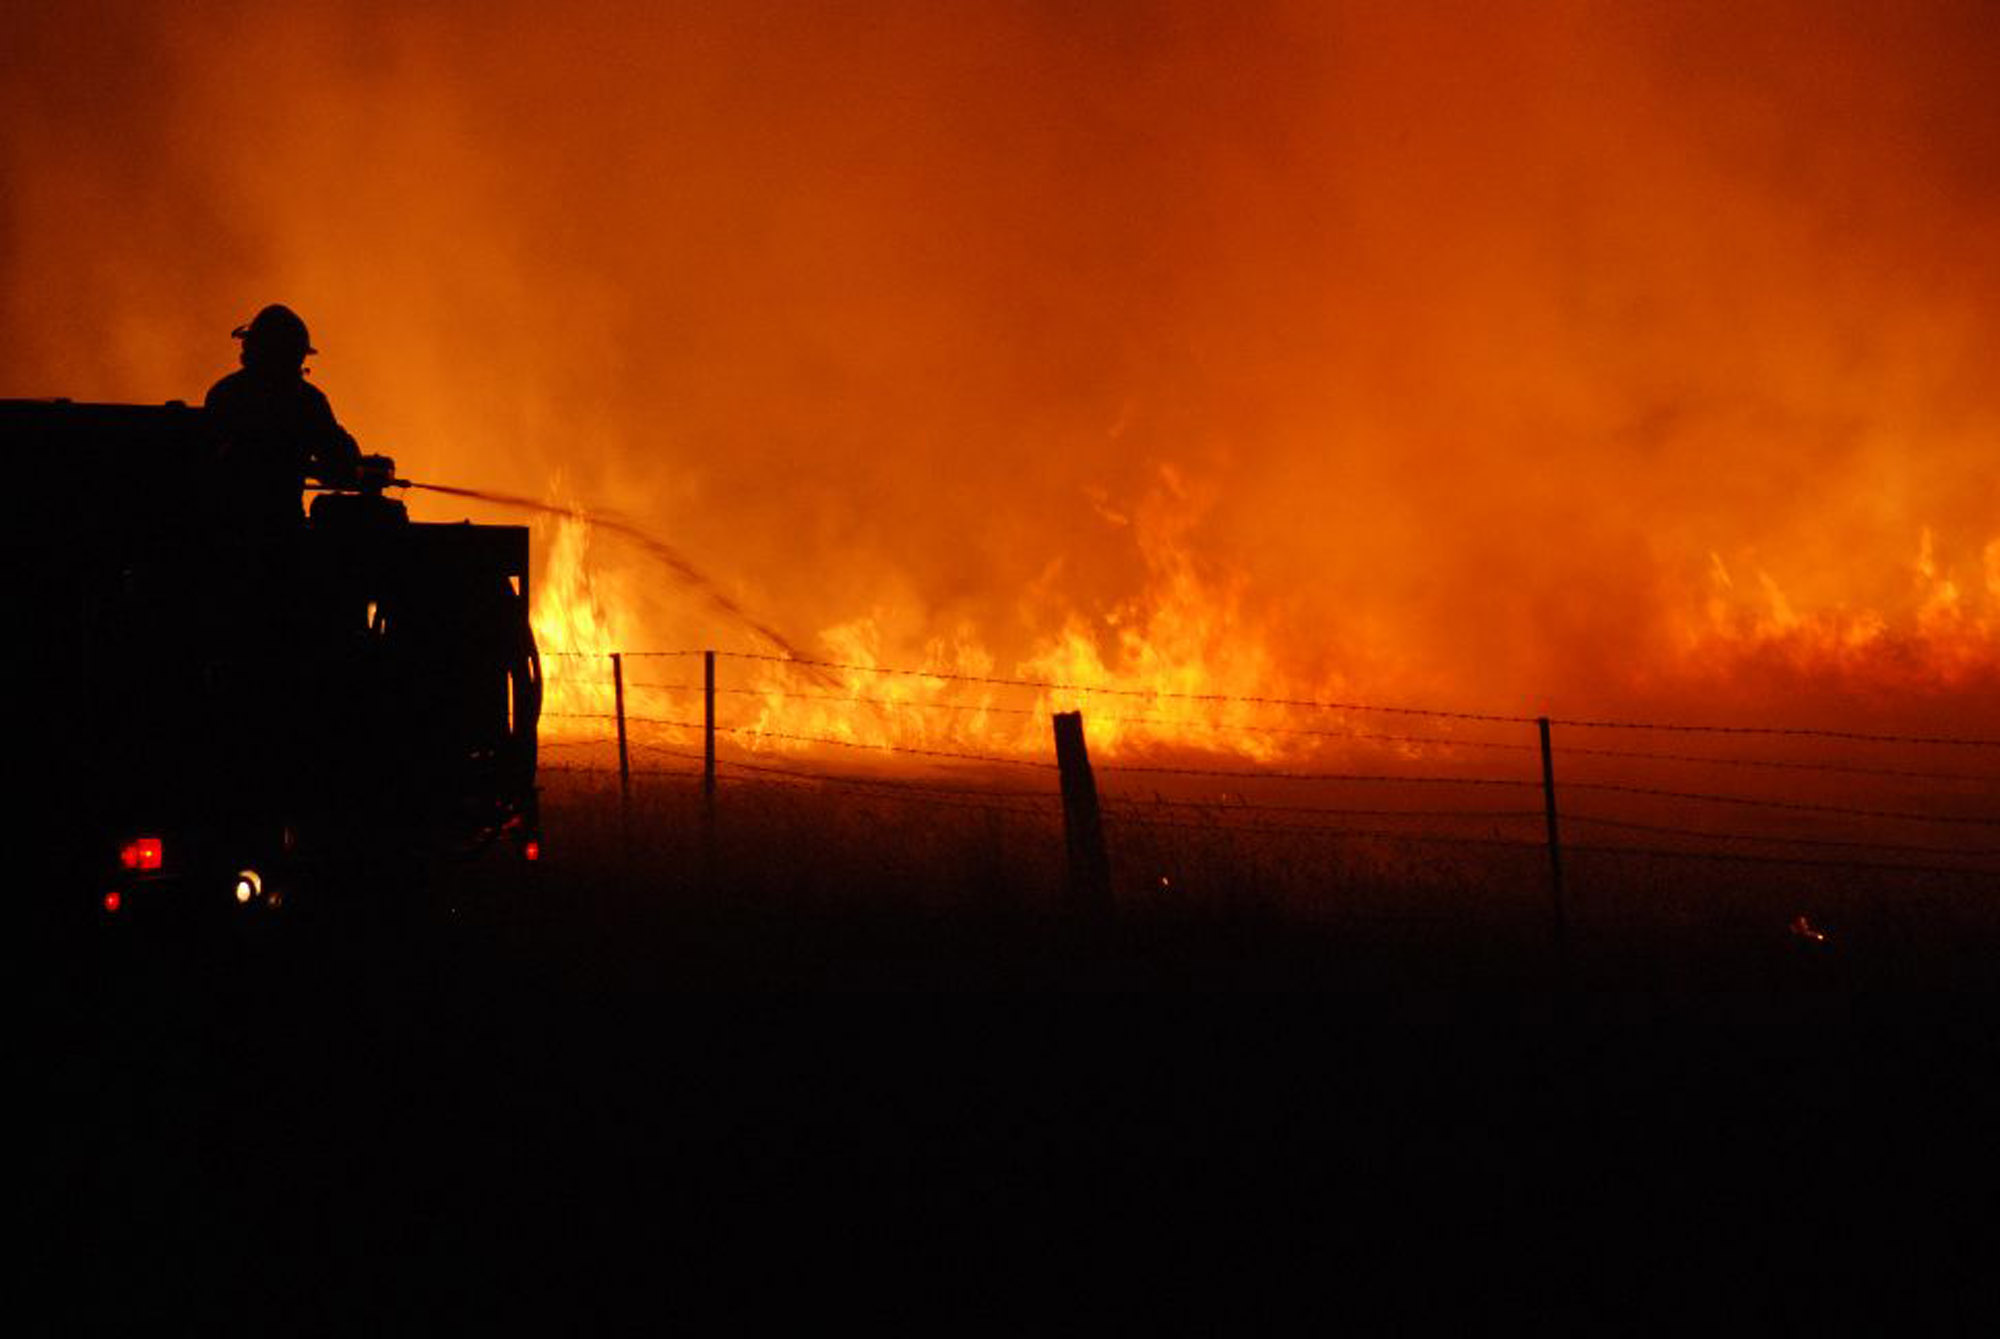 A firefighter battles a blaze in the Victorian township of Taggety on February 7, 2009.